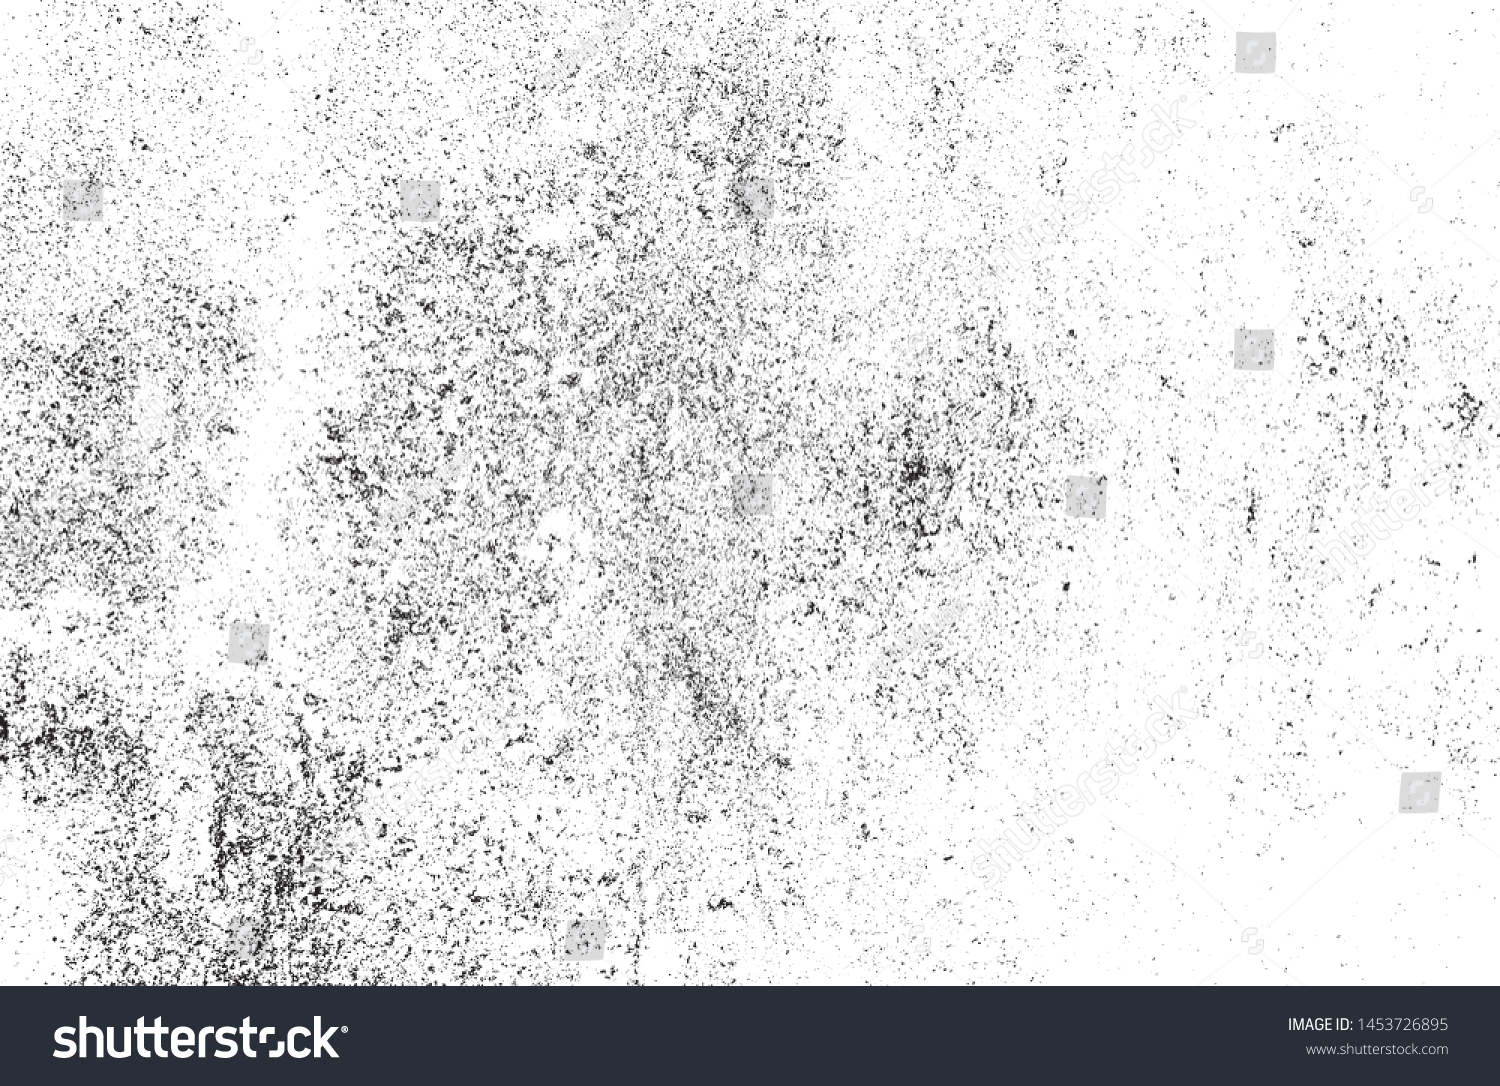 Grunge textures set. Distressed Effect. Grunge Background. Vector textured effect. Vector illustration.  #1453726895